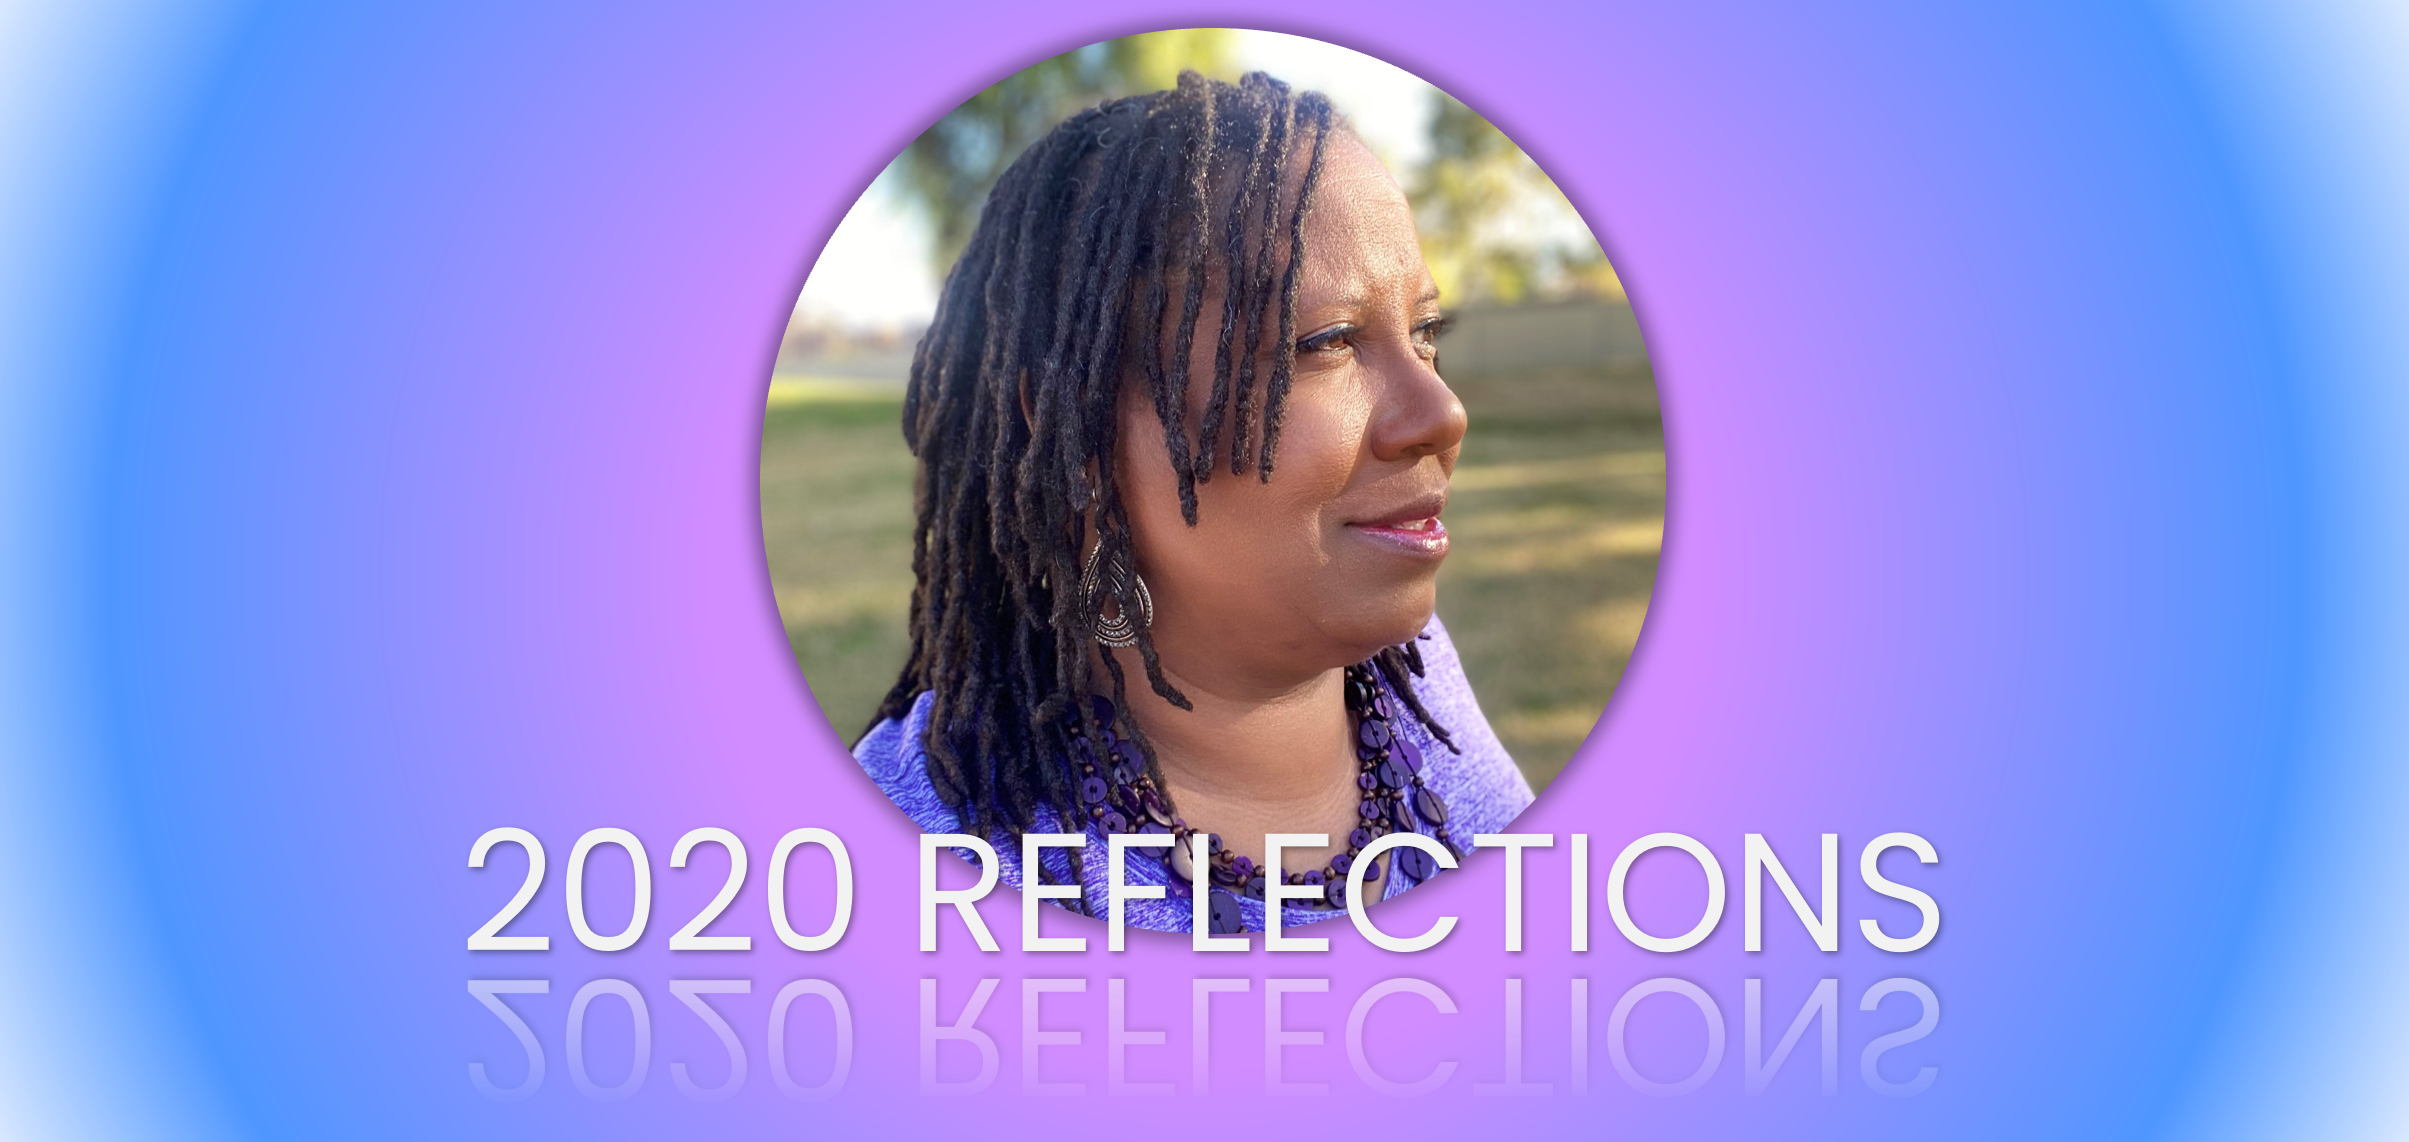 What lessons did you learn in 2020 that will make your 2021 even better?